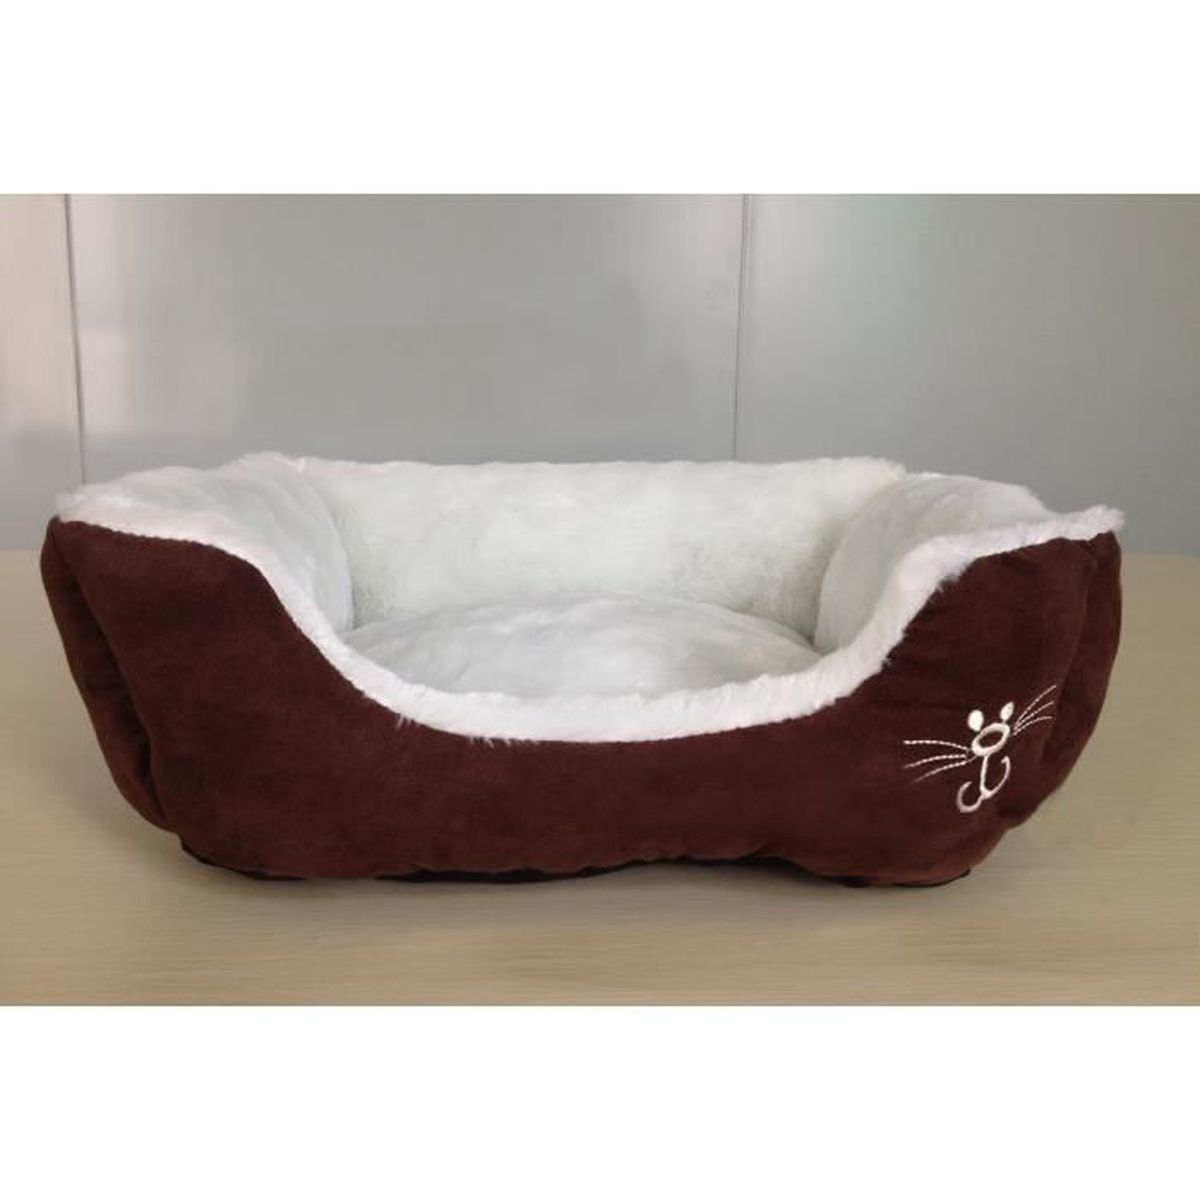 lit couchage pour chat chien objet animalerie en su d en peluche couleur caf brun marron blanc. Black Bedroom Furniture Sets. Home Design Ideas